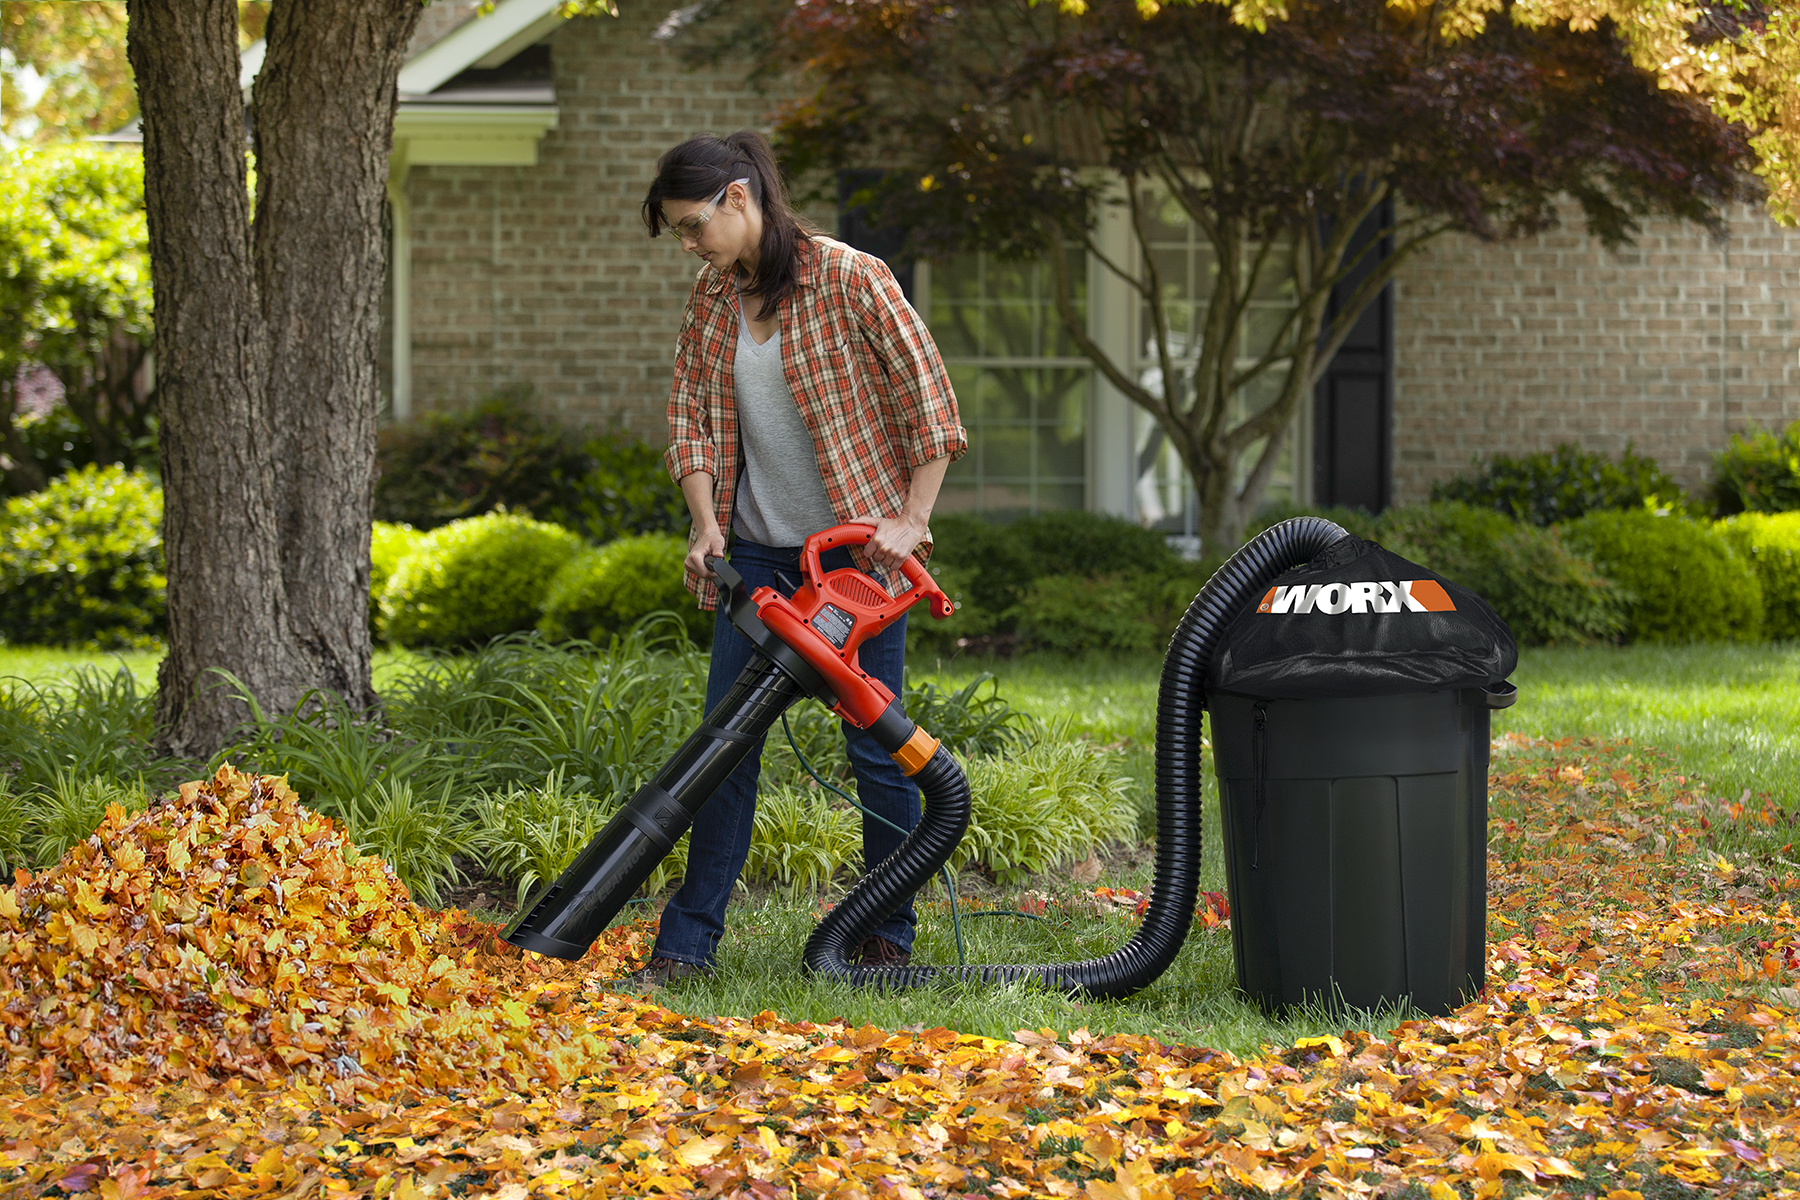 New Worx Leafpro System Makes Quick Work Of Fall Leaf Cleanup